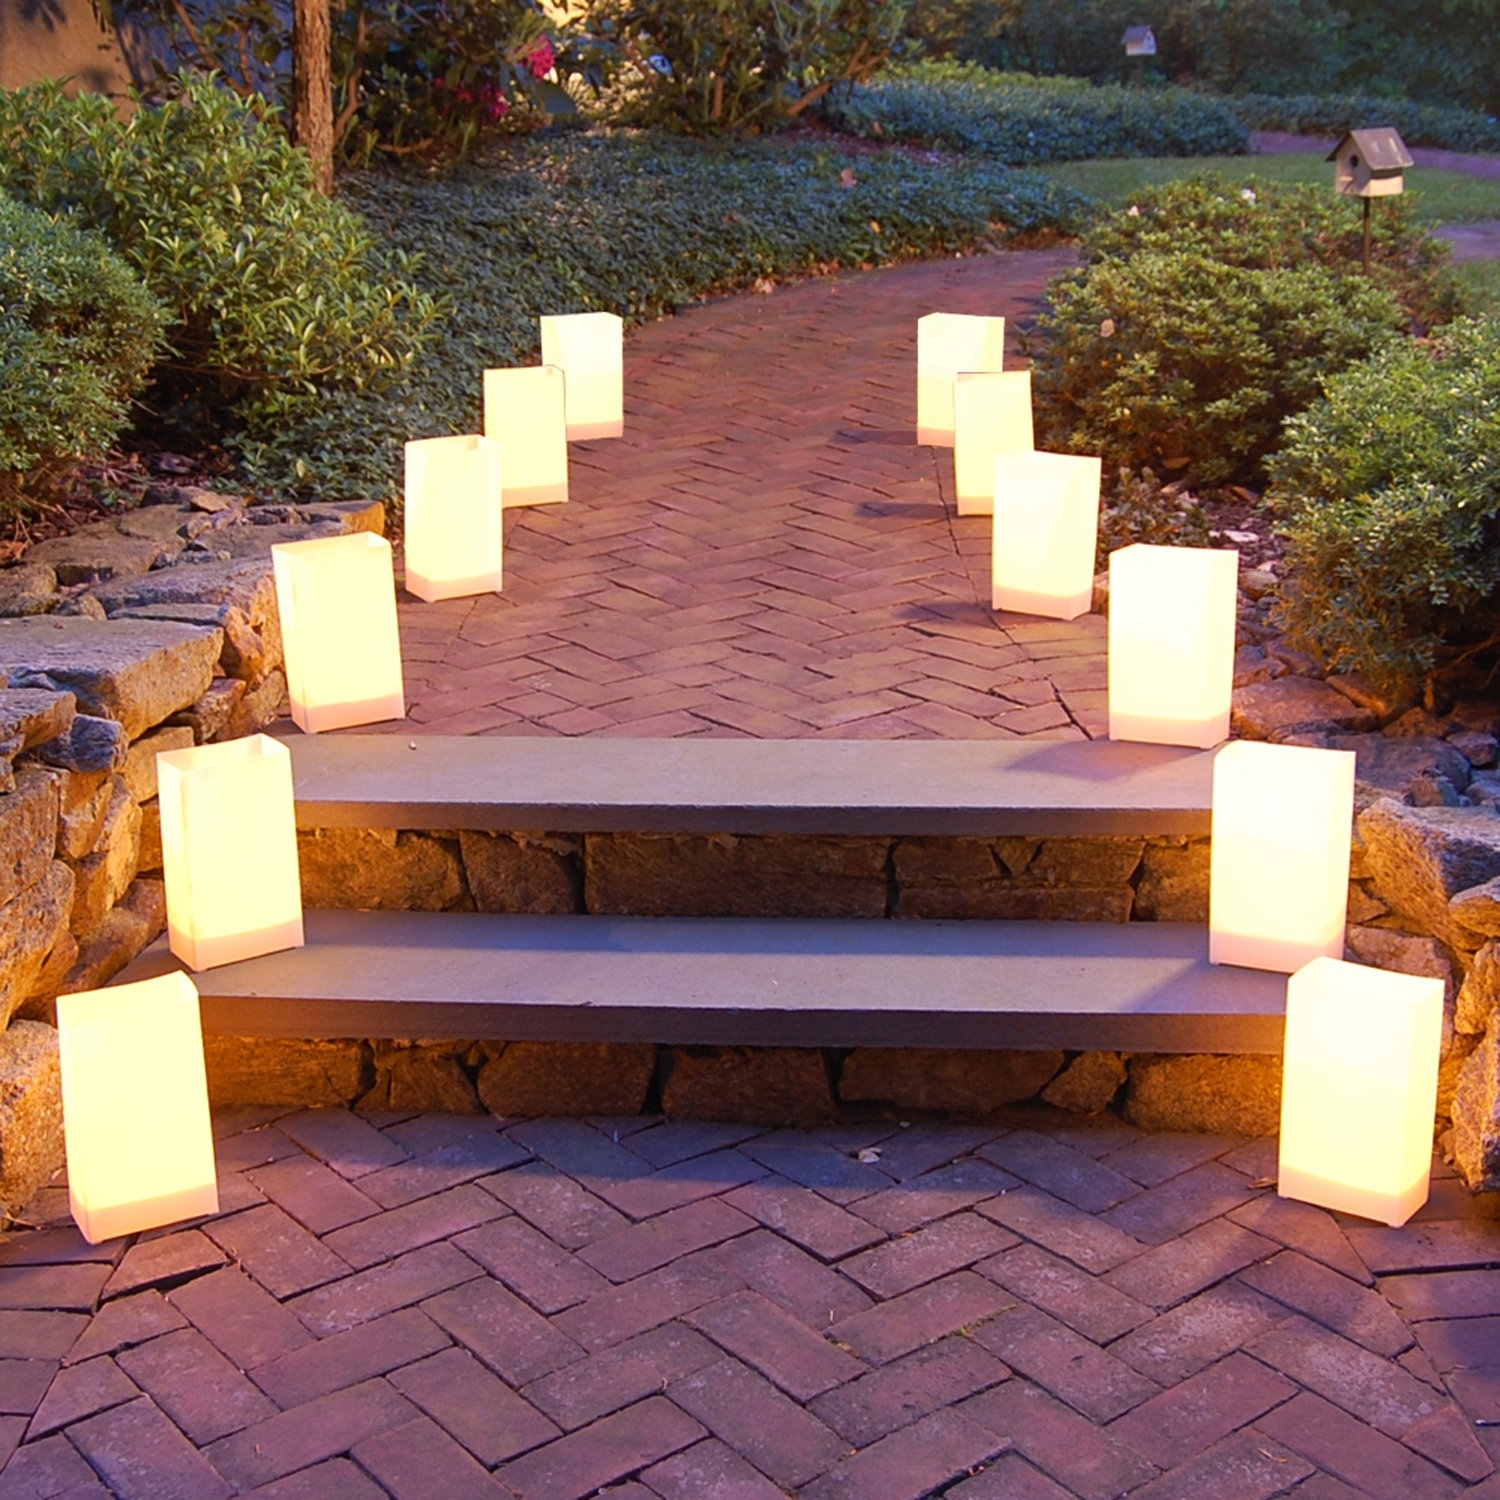 Luminarias | Wayfair Regarding Wayfair Landscape Lighting For Mini Garden (View 2 of 15)